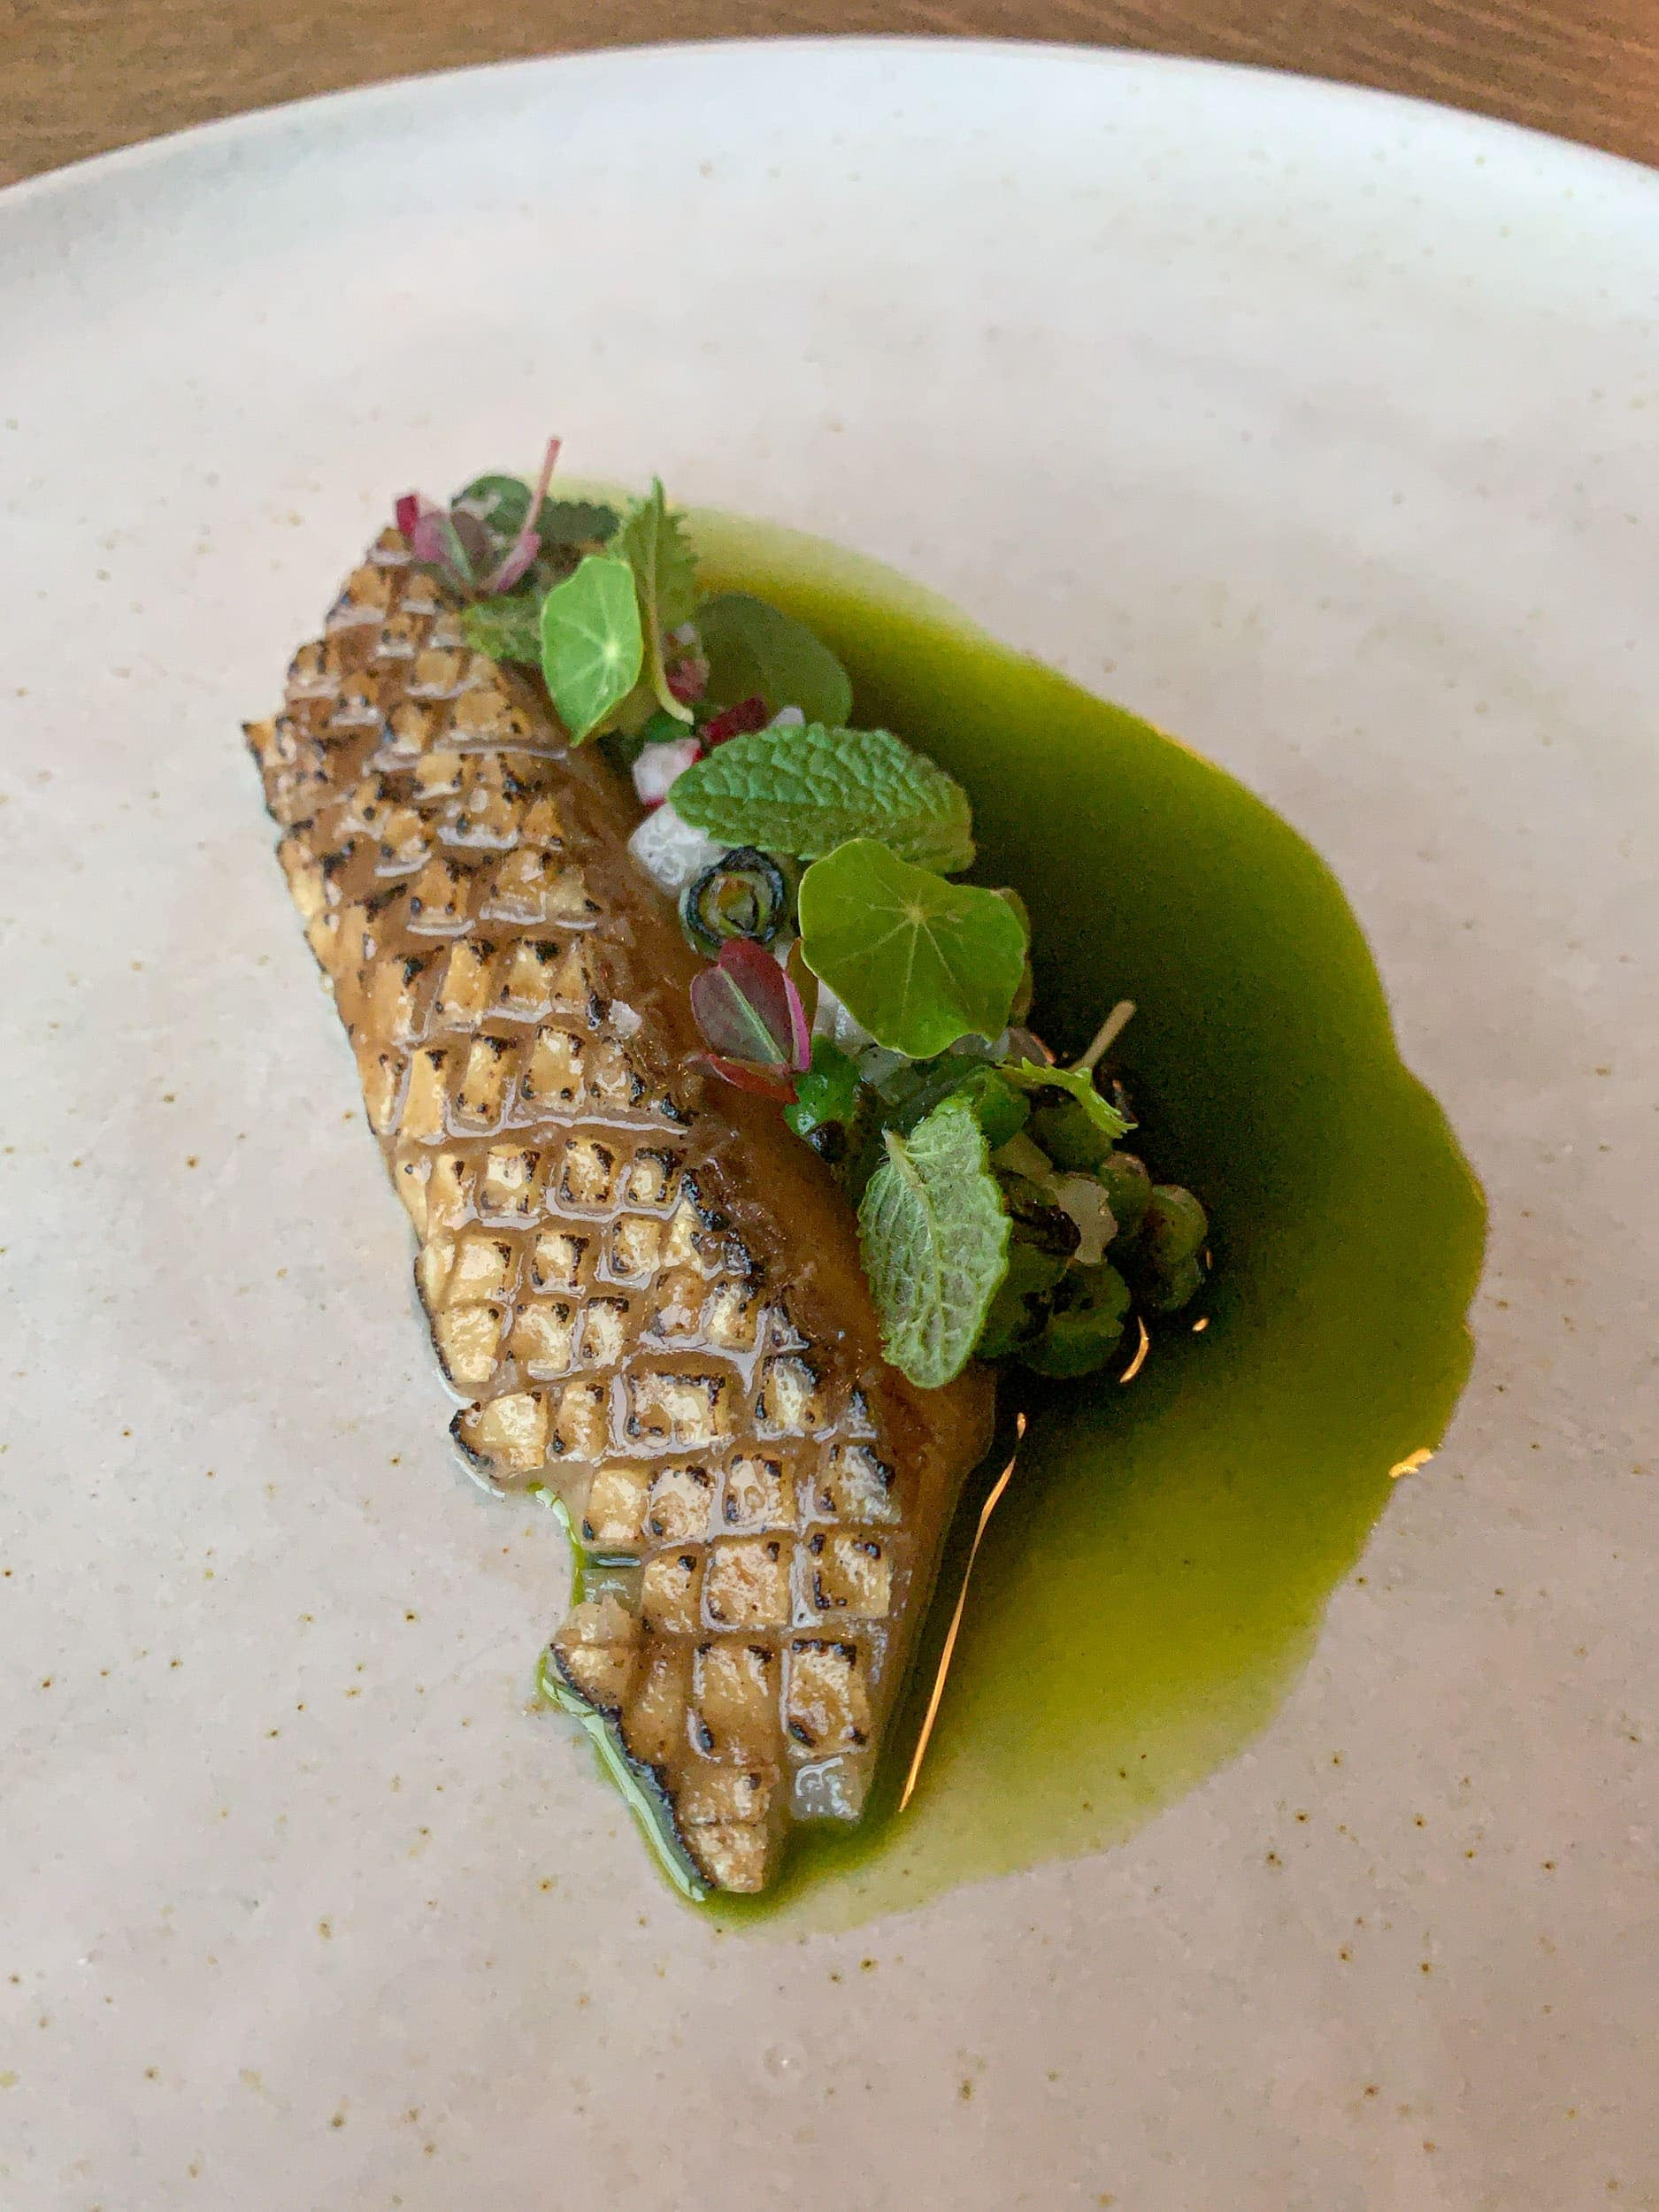 Mackerel, haricot vert, parsley, and garden herbs